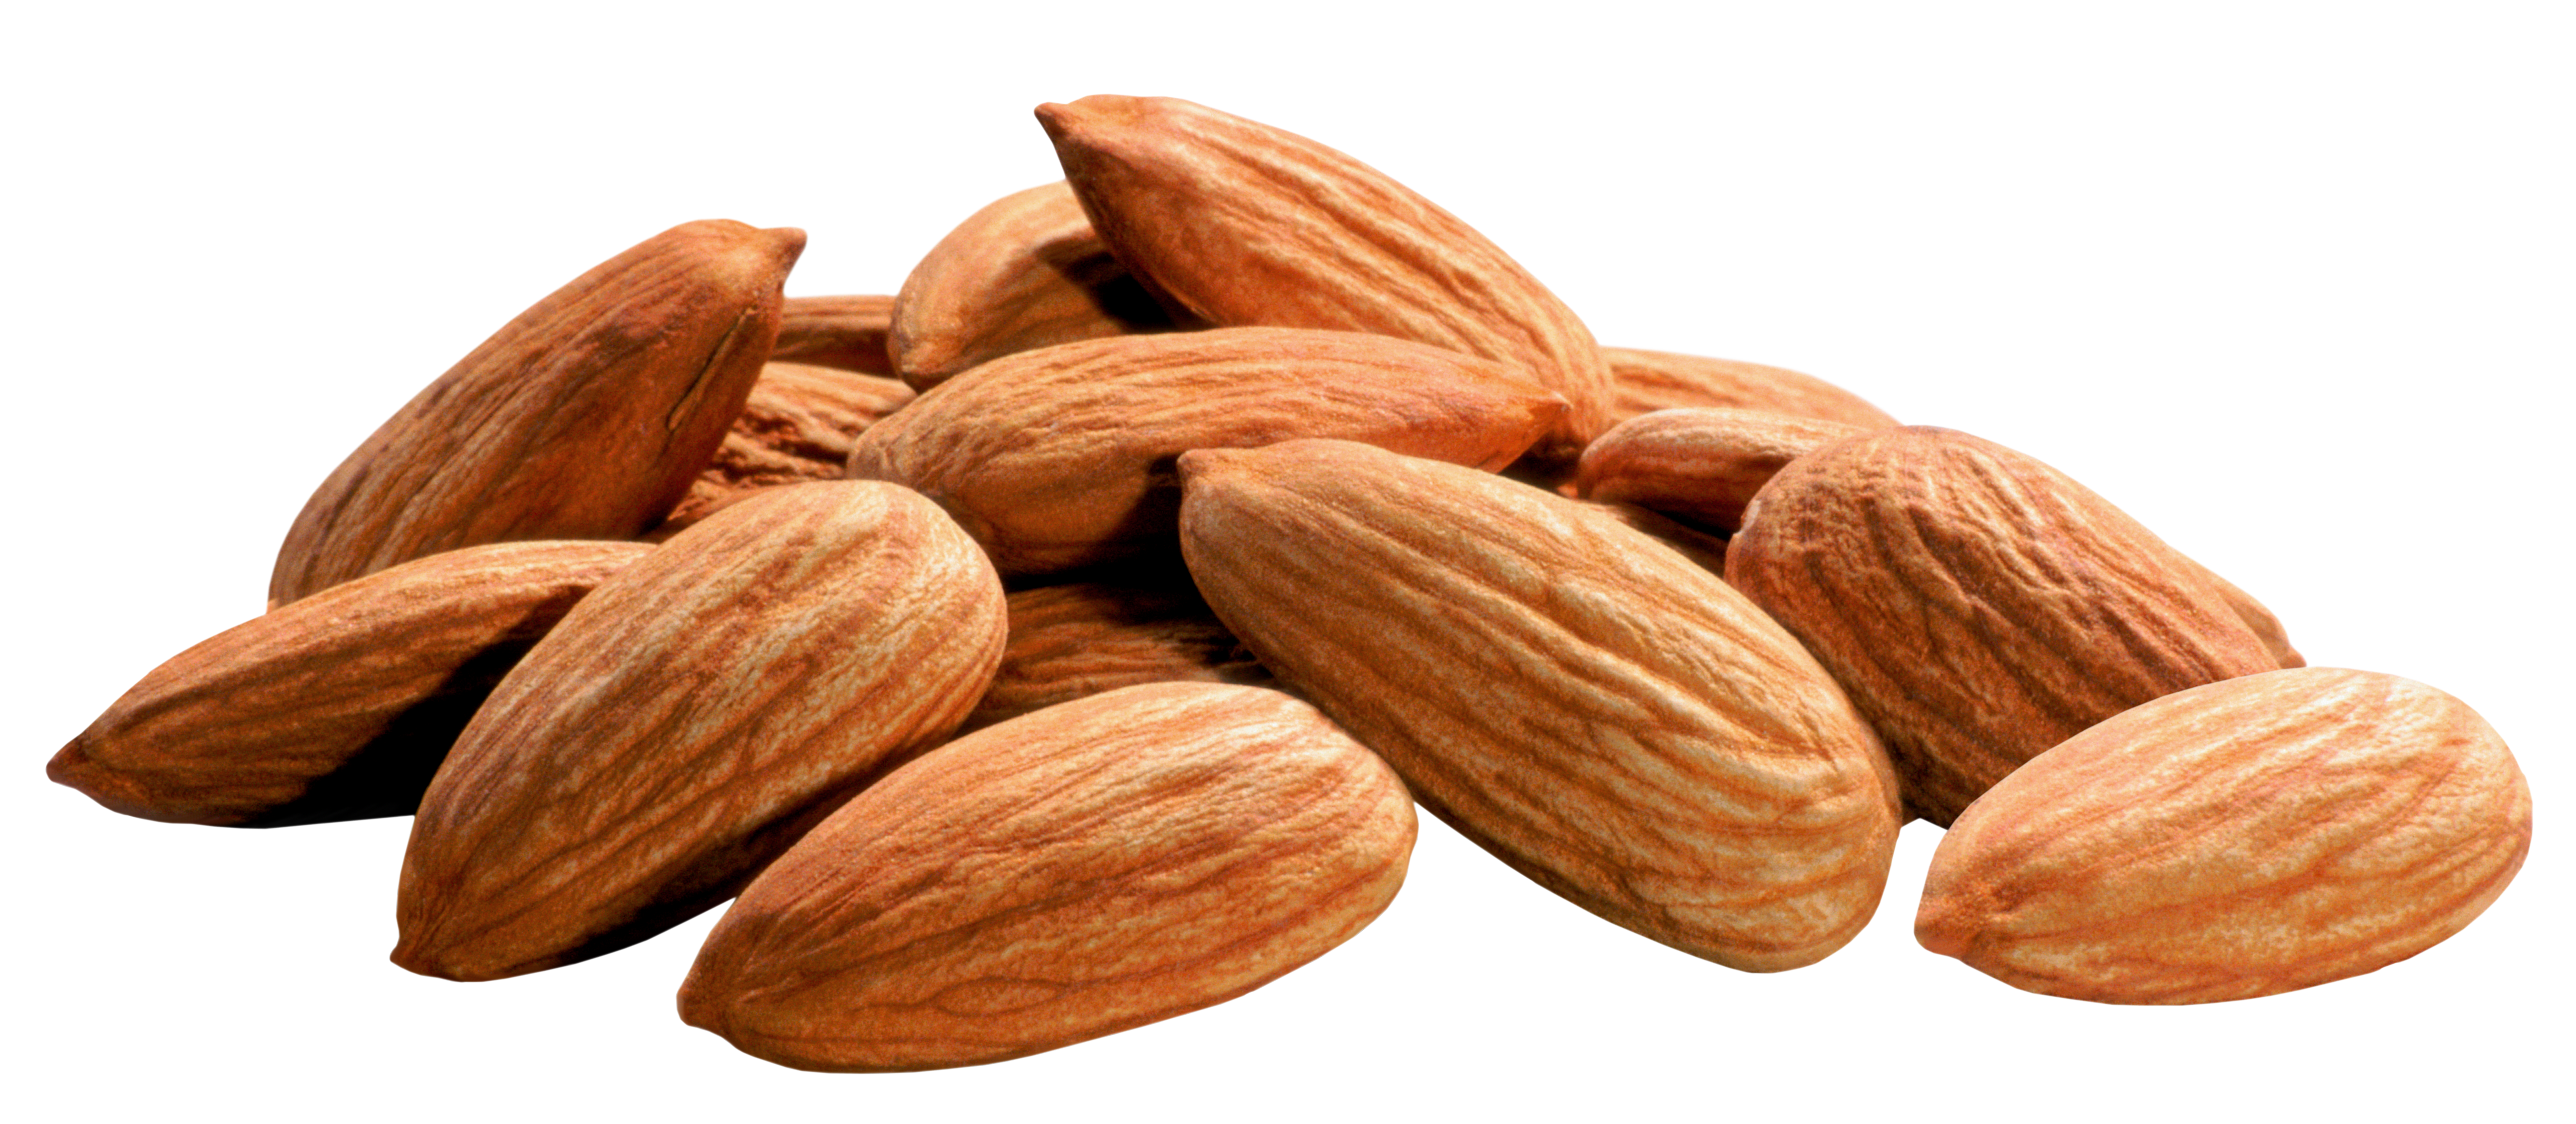 Nuts transparent. Almonds png image gallery